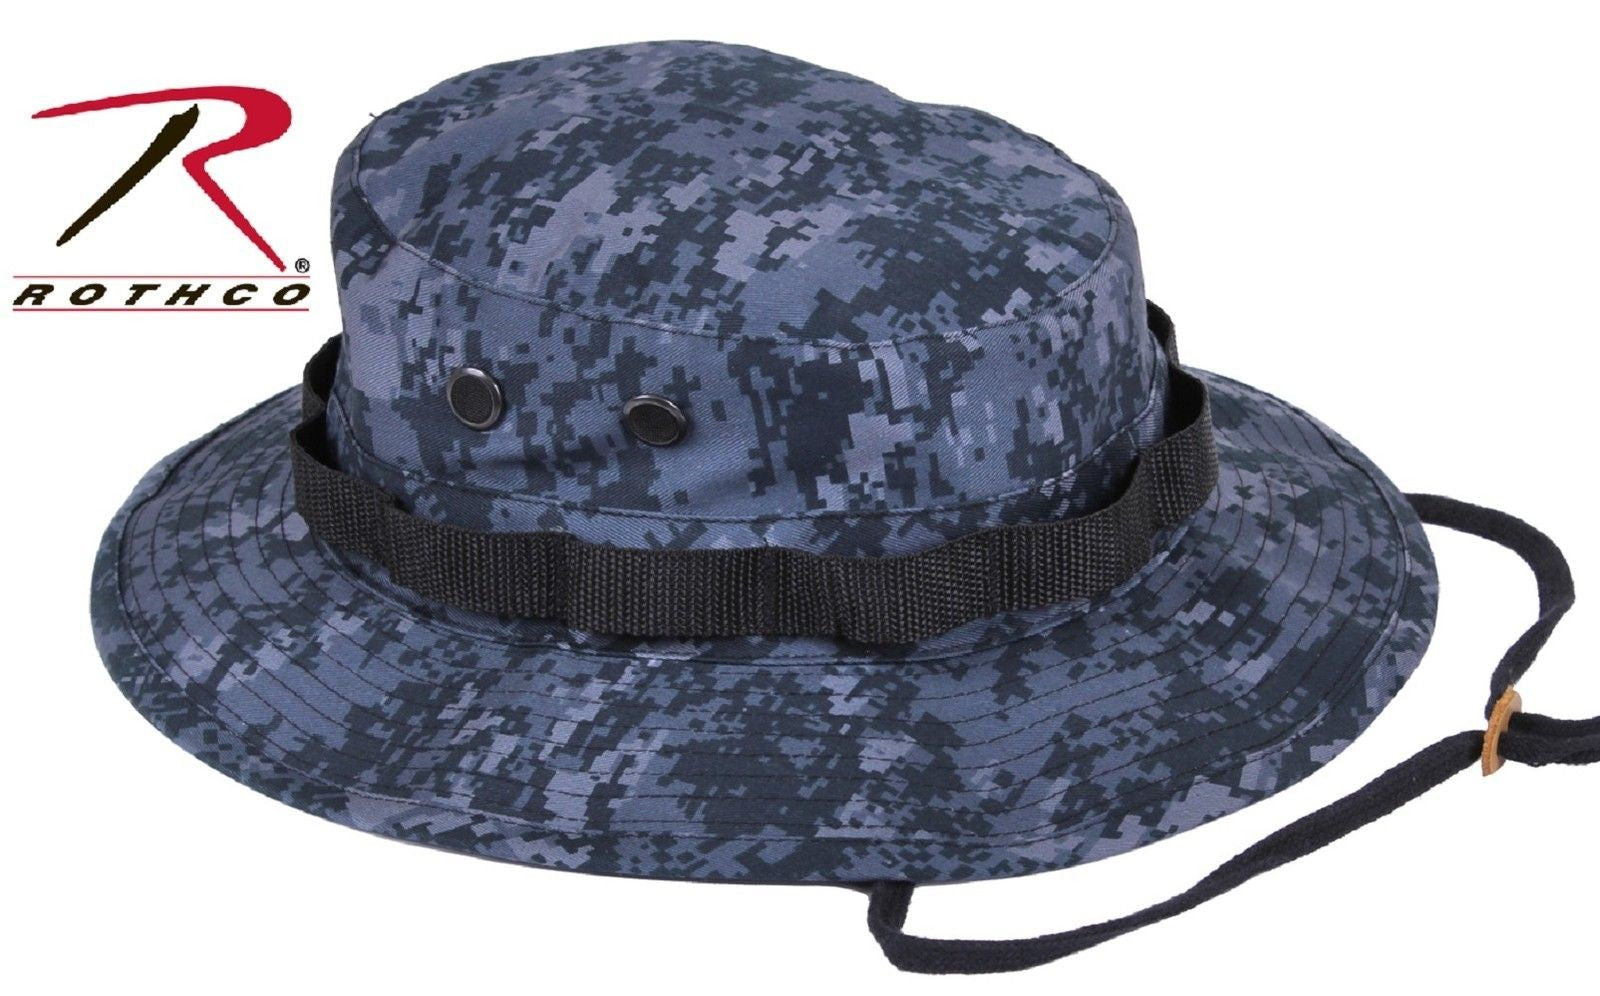 ... Black Camouflage Bucket Hats. Zoom. Move your mouse over image or click  to enlarge ad7c63d940ec